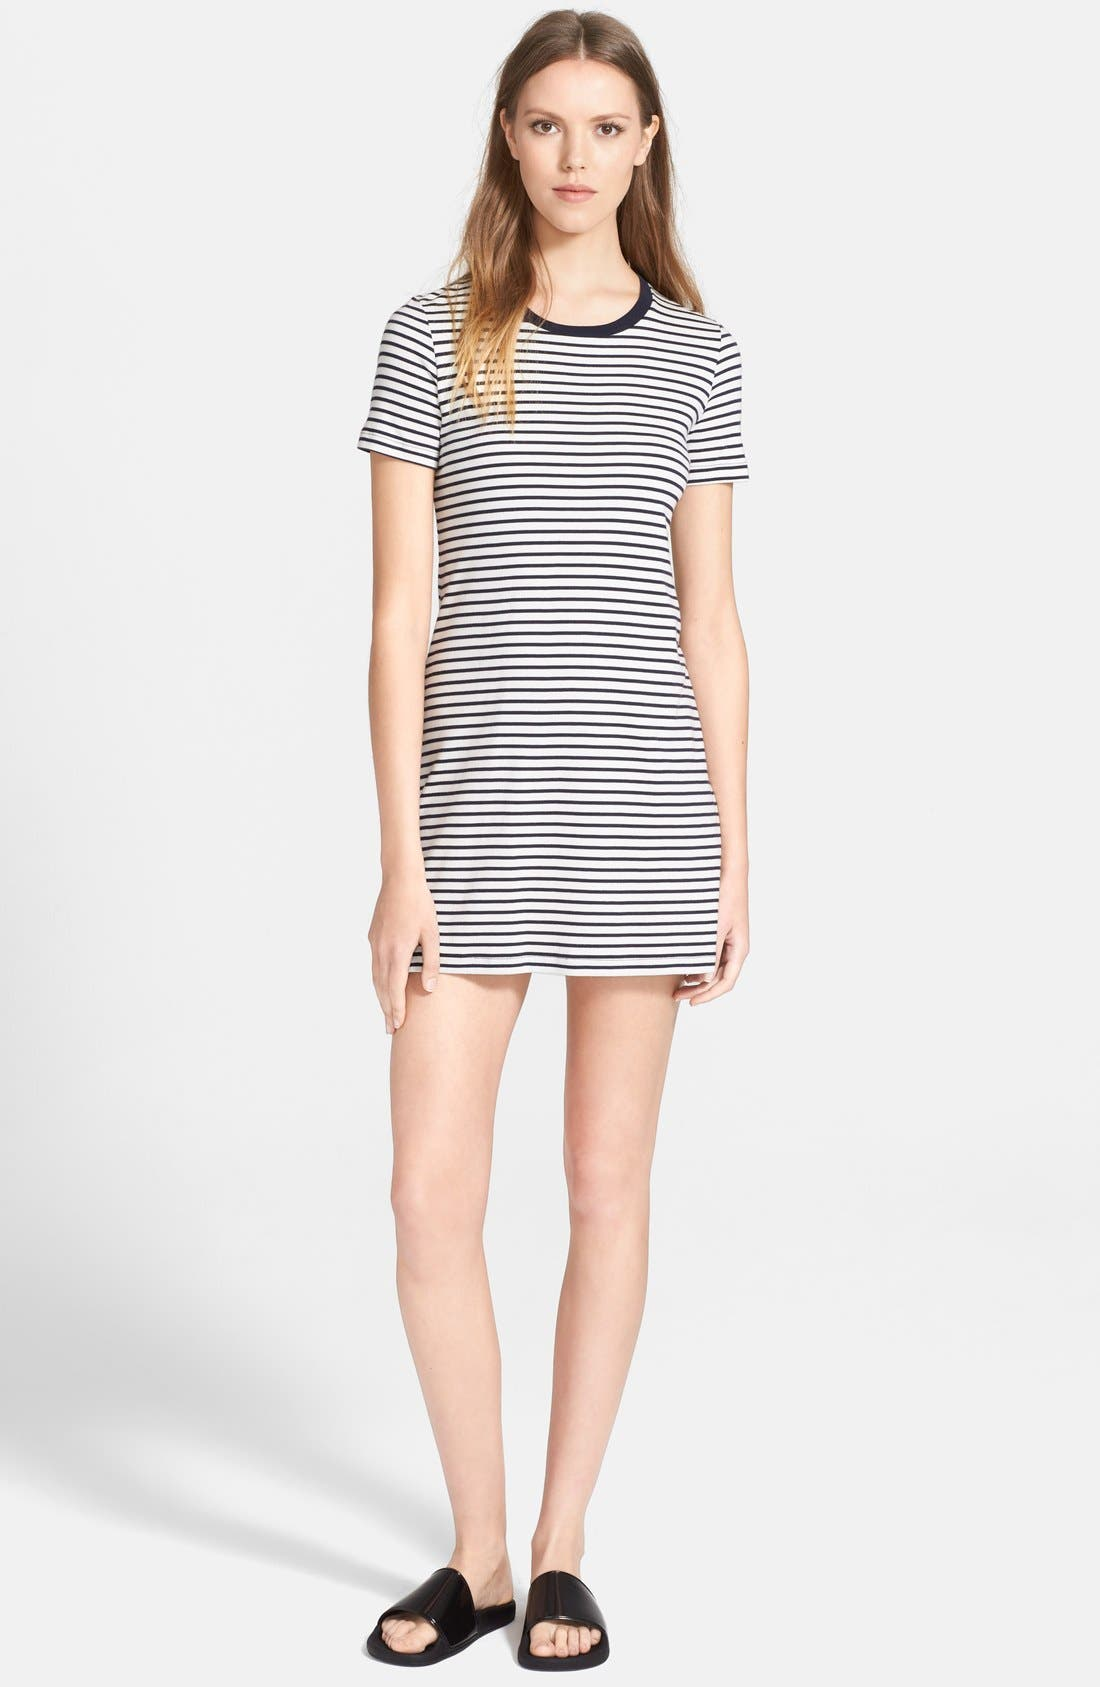 Main Image - Theory 'Cherry' Stripe Pima Cotton T-Shirt Dress